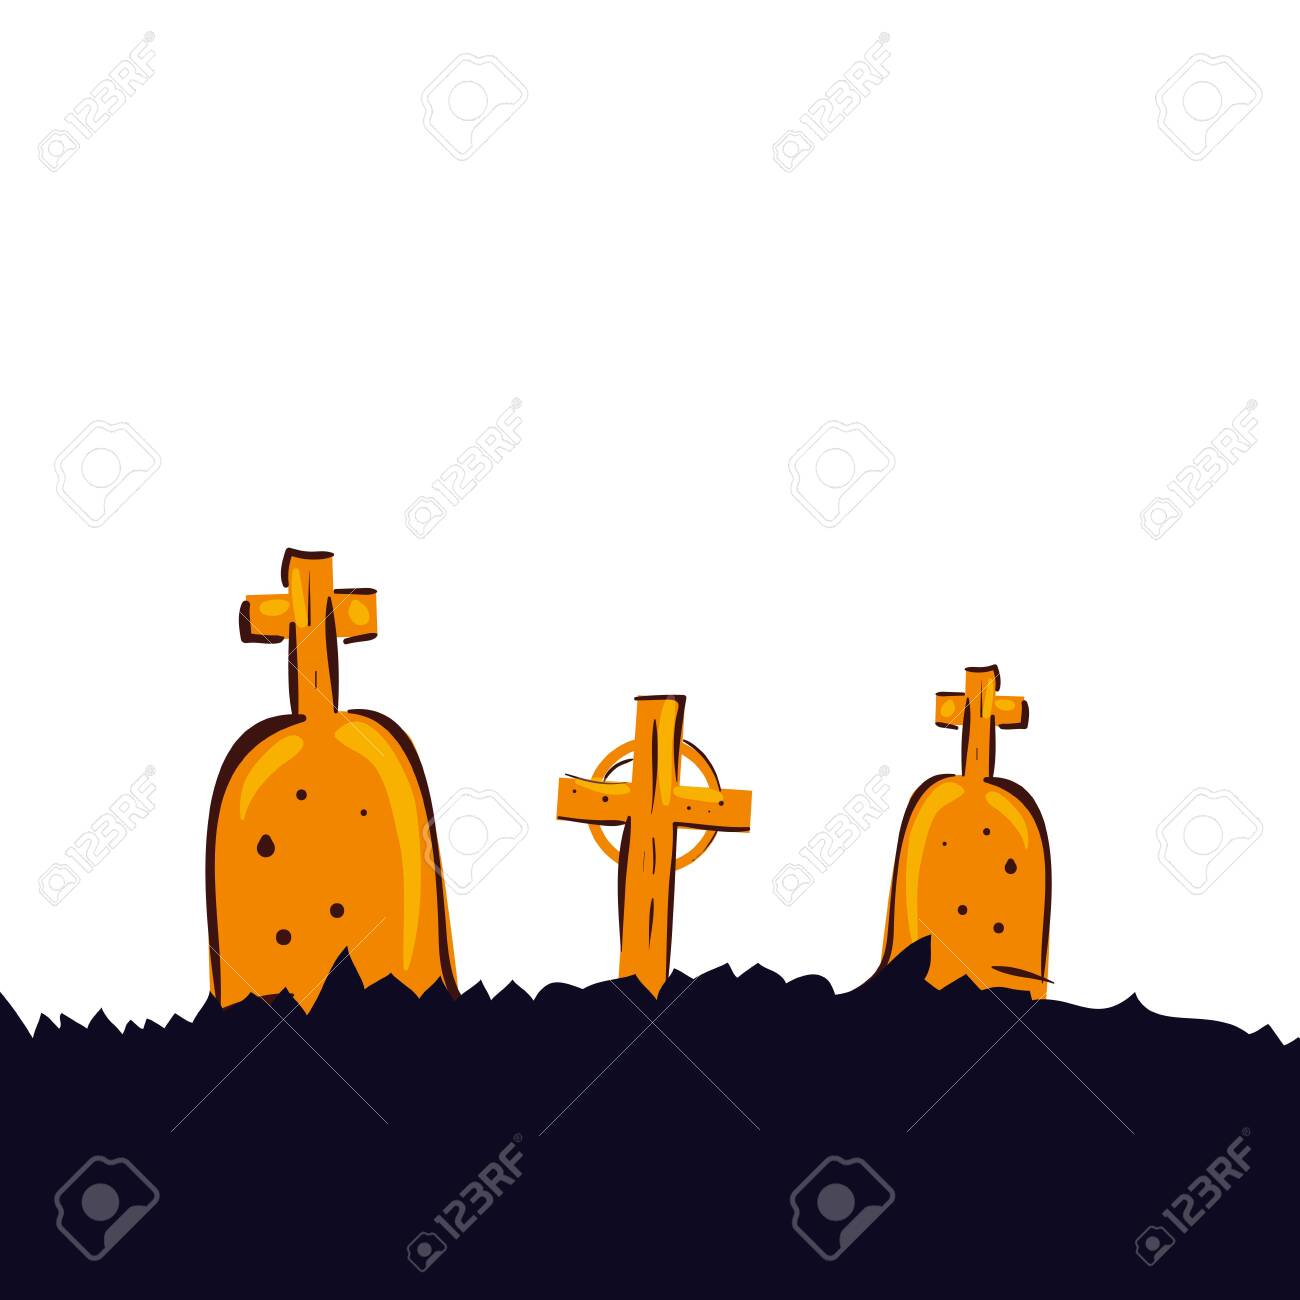 halloween tombs of cemetery isolated icon vector illustration design - 134226371